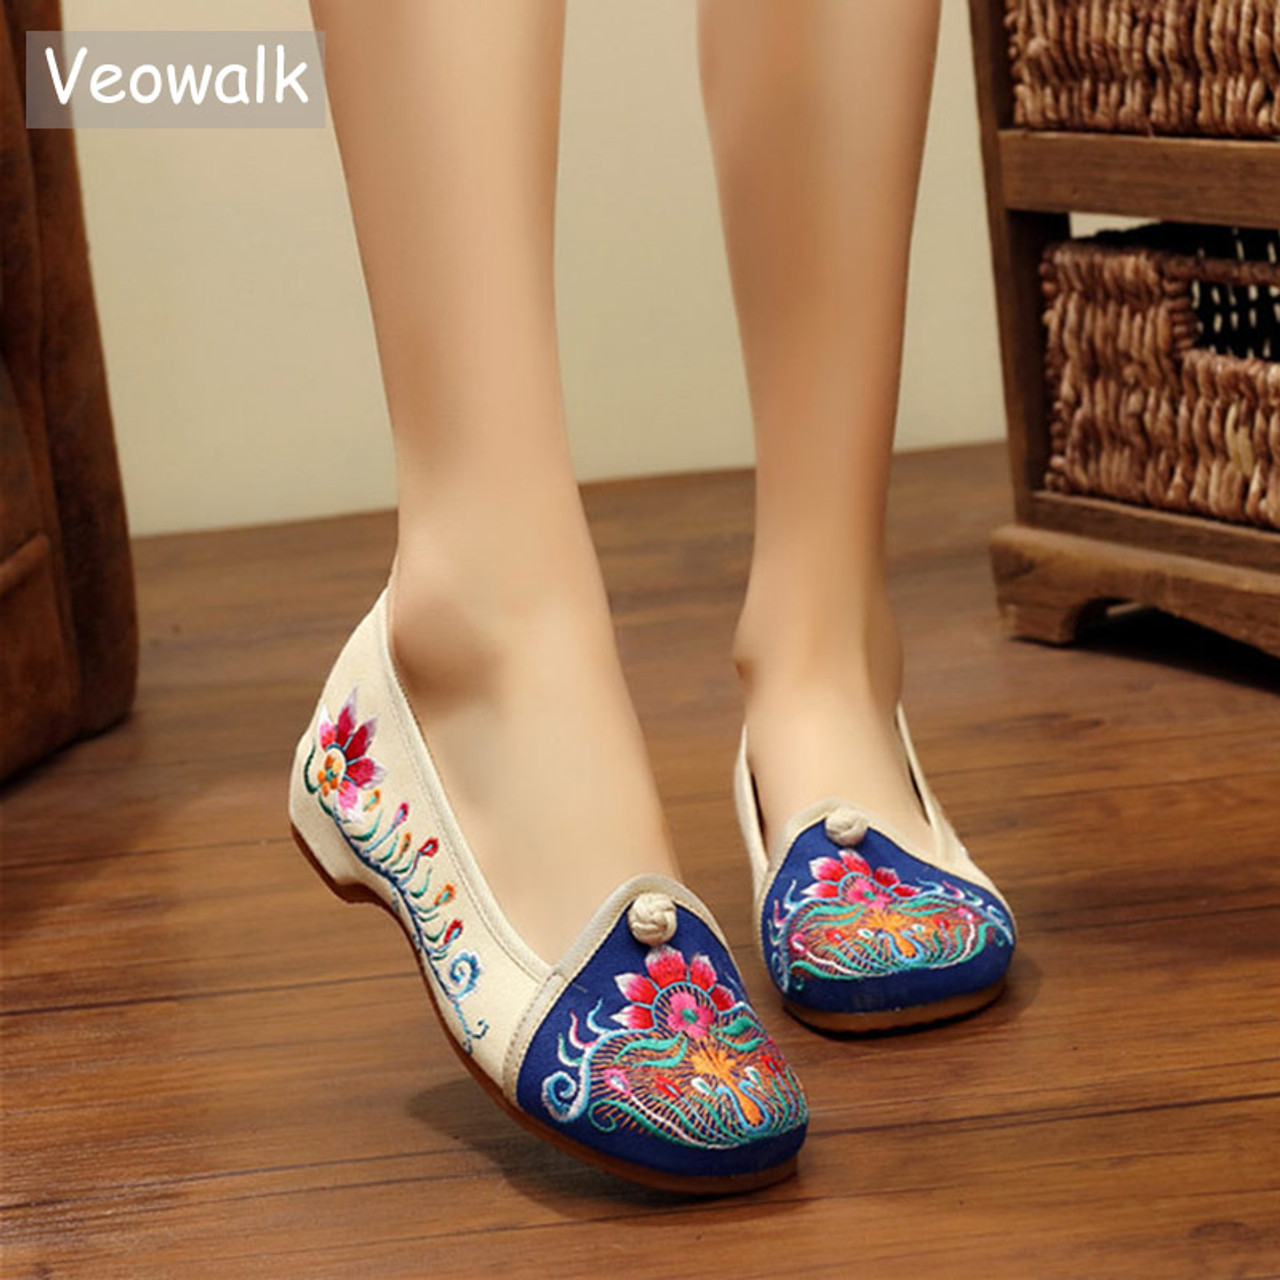 967b6df8d2c95 Veowalk Vintage Women's Casual Cotton Fabric Floral Embroidered Ballet  Flats Ladies Casual Canvas Embroidery Shoes zapatos mujer